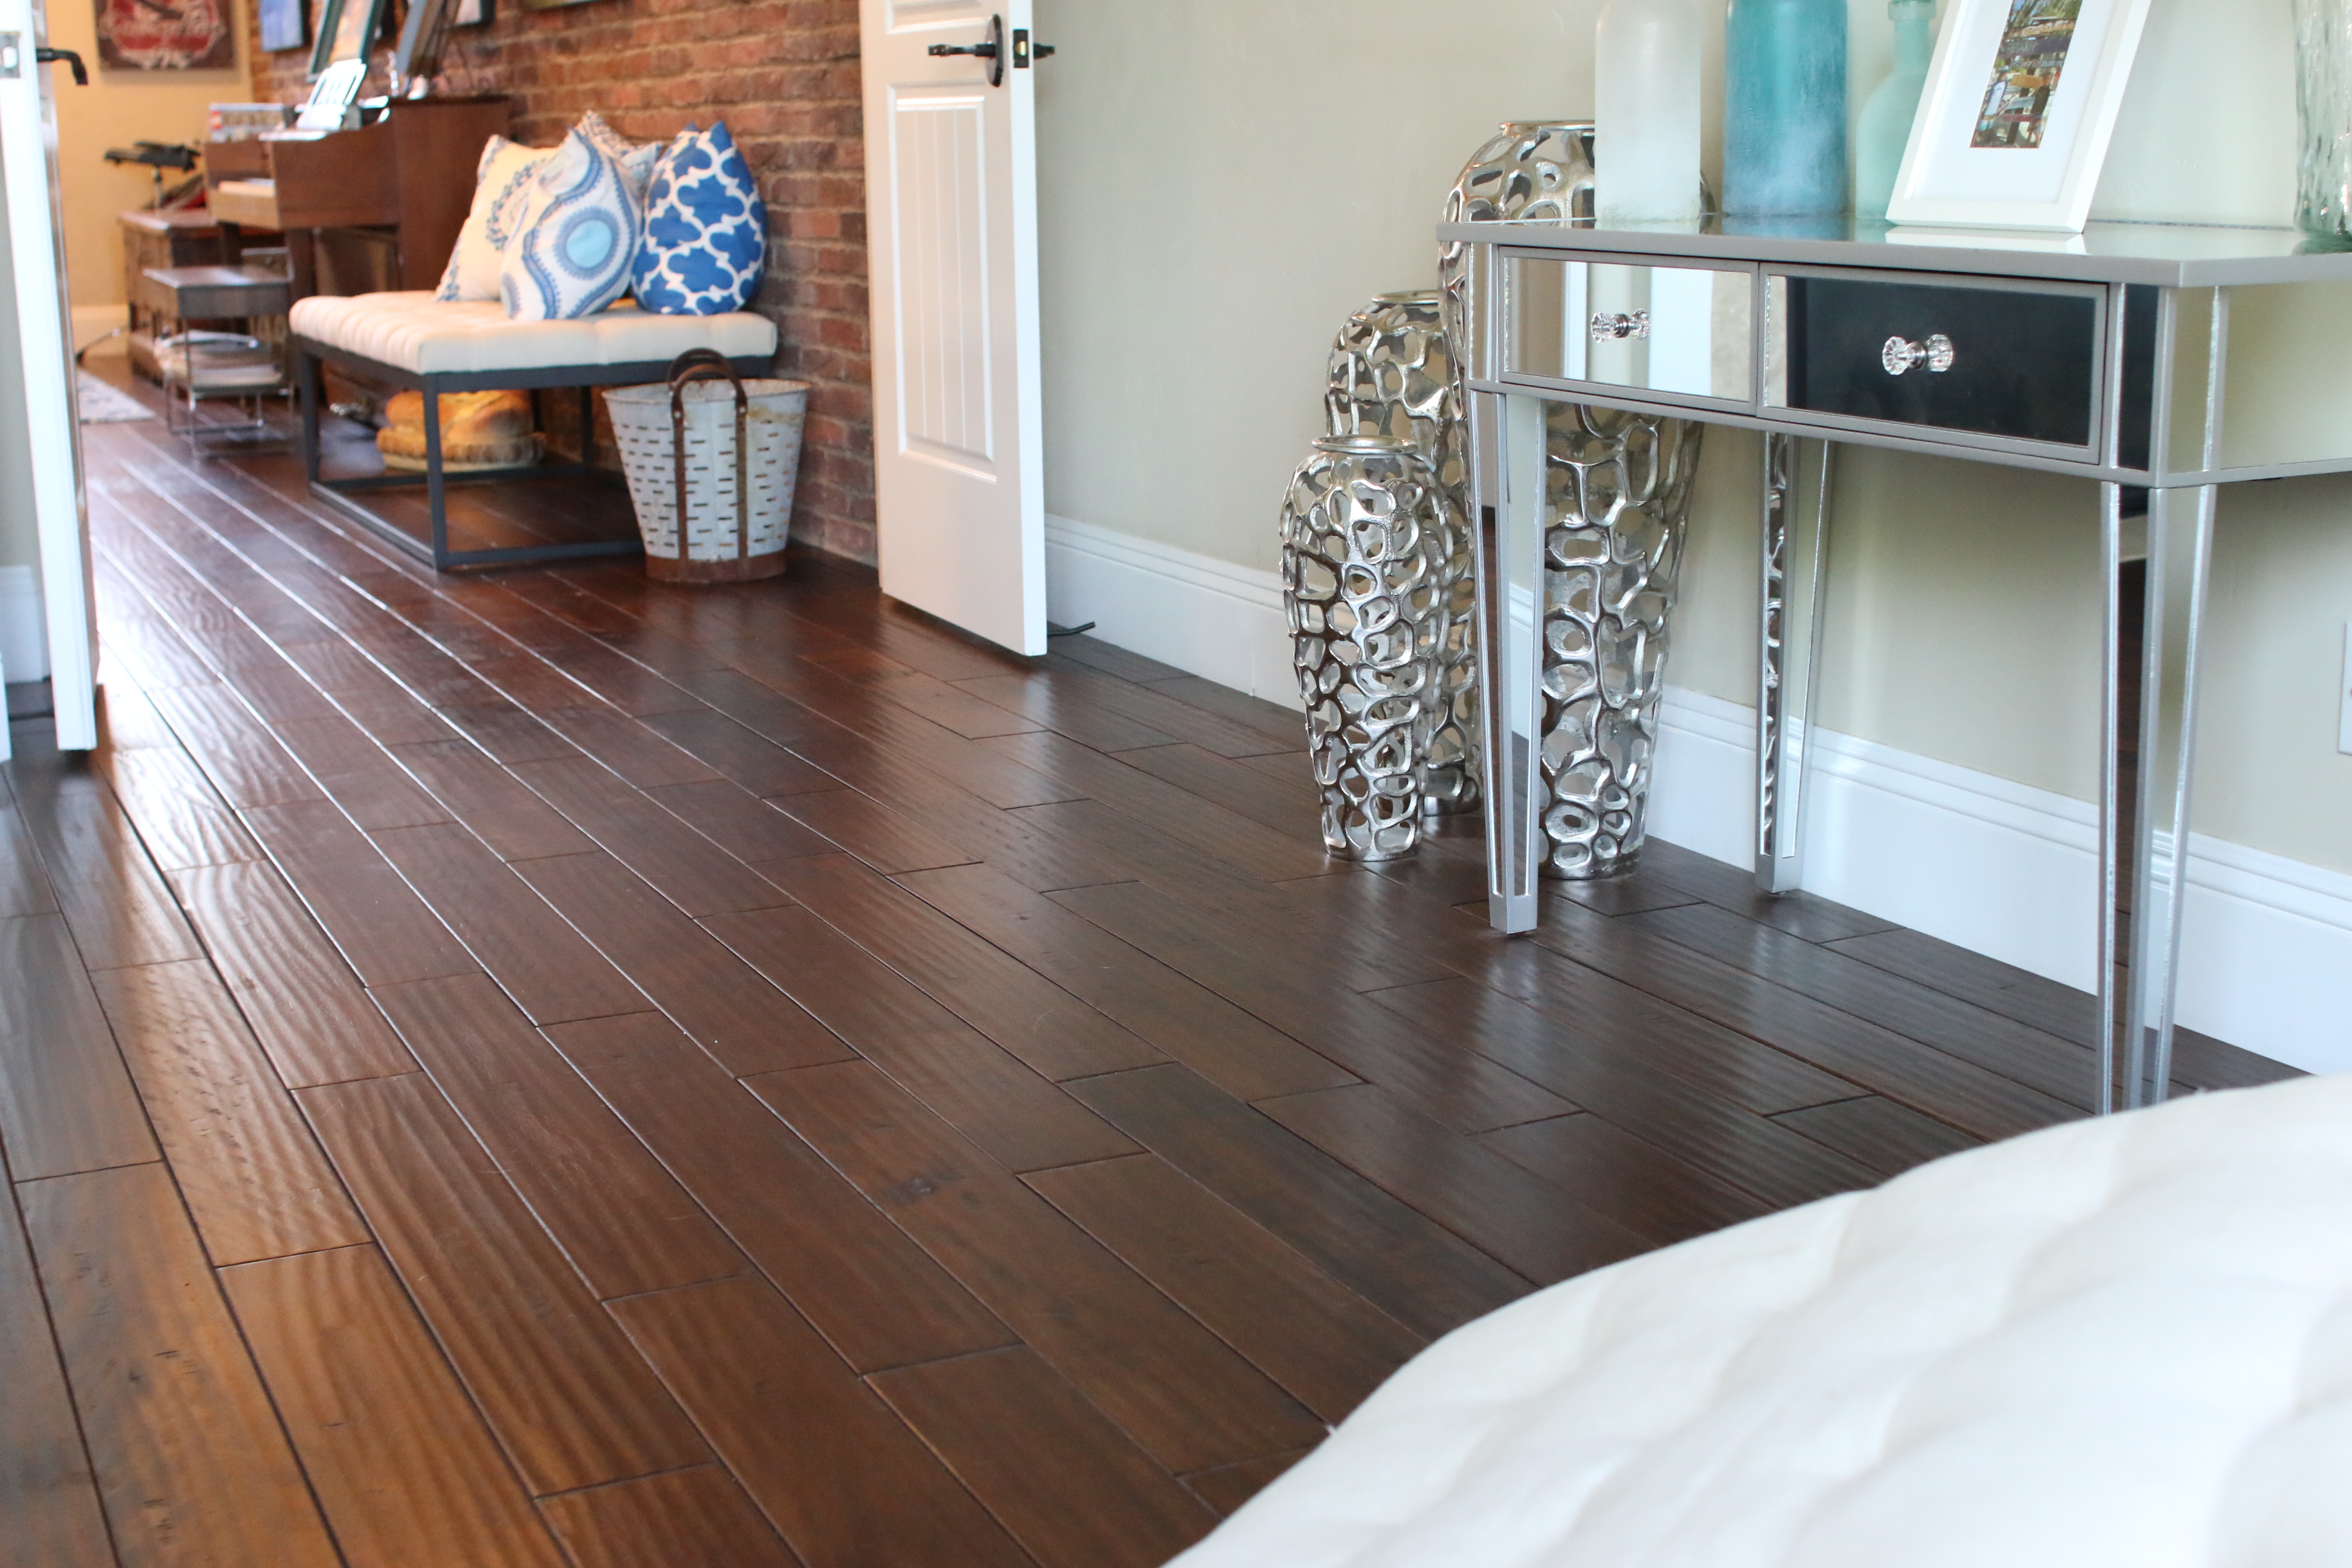 reno hardwood flooring options best reno flooring company